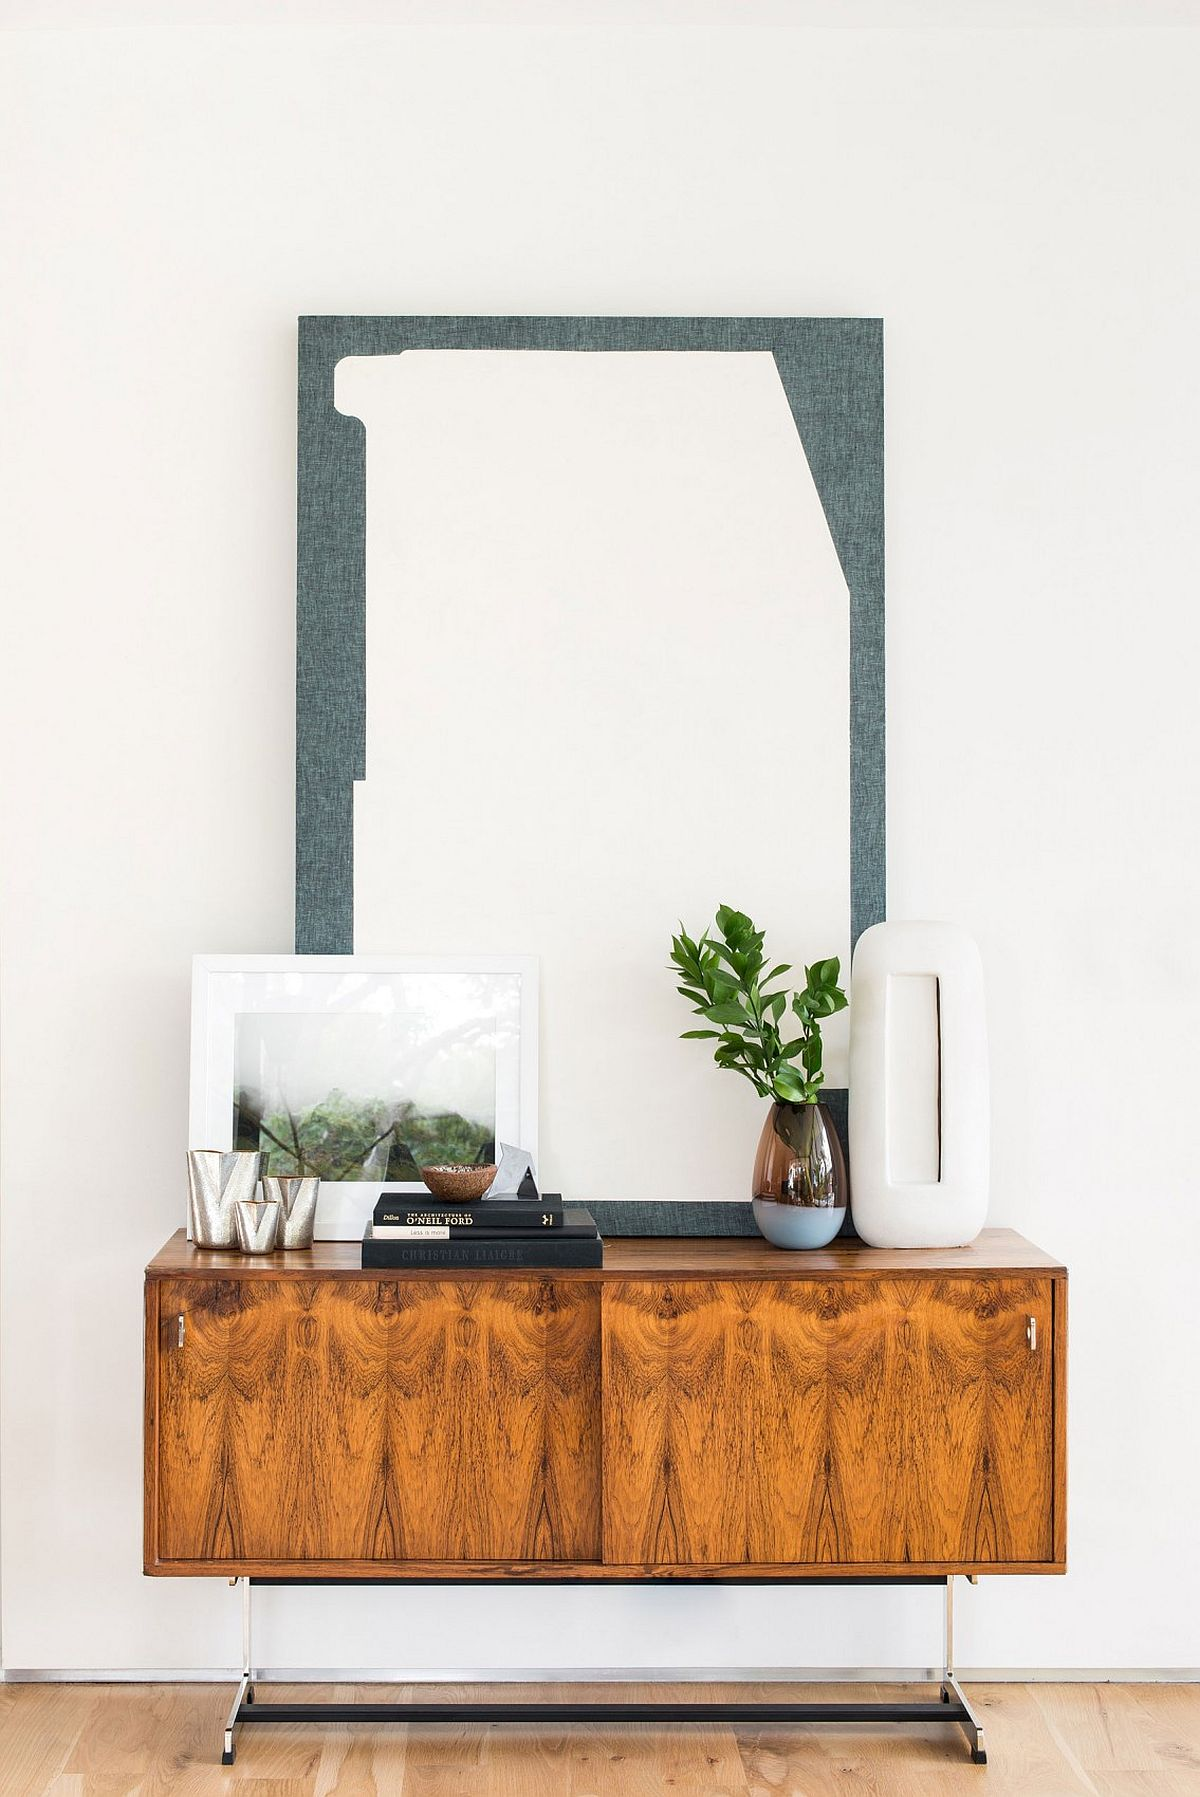 Gorgeous sidetable with midcentury style